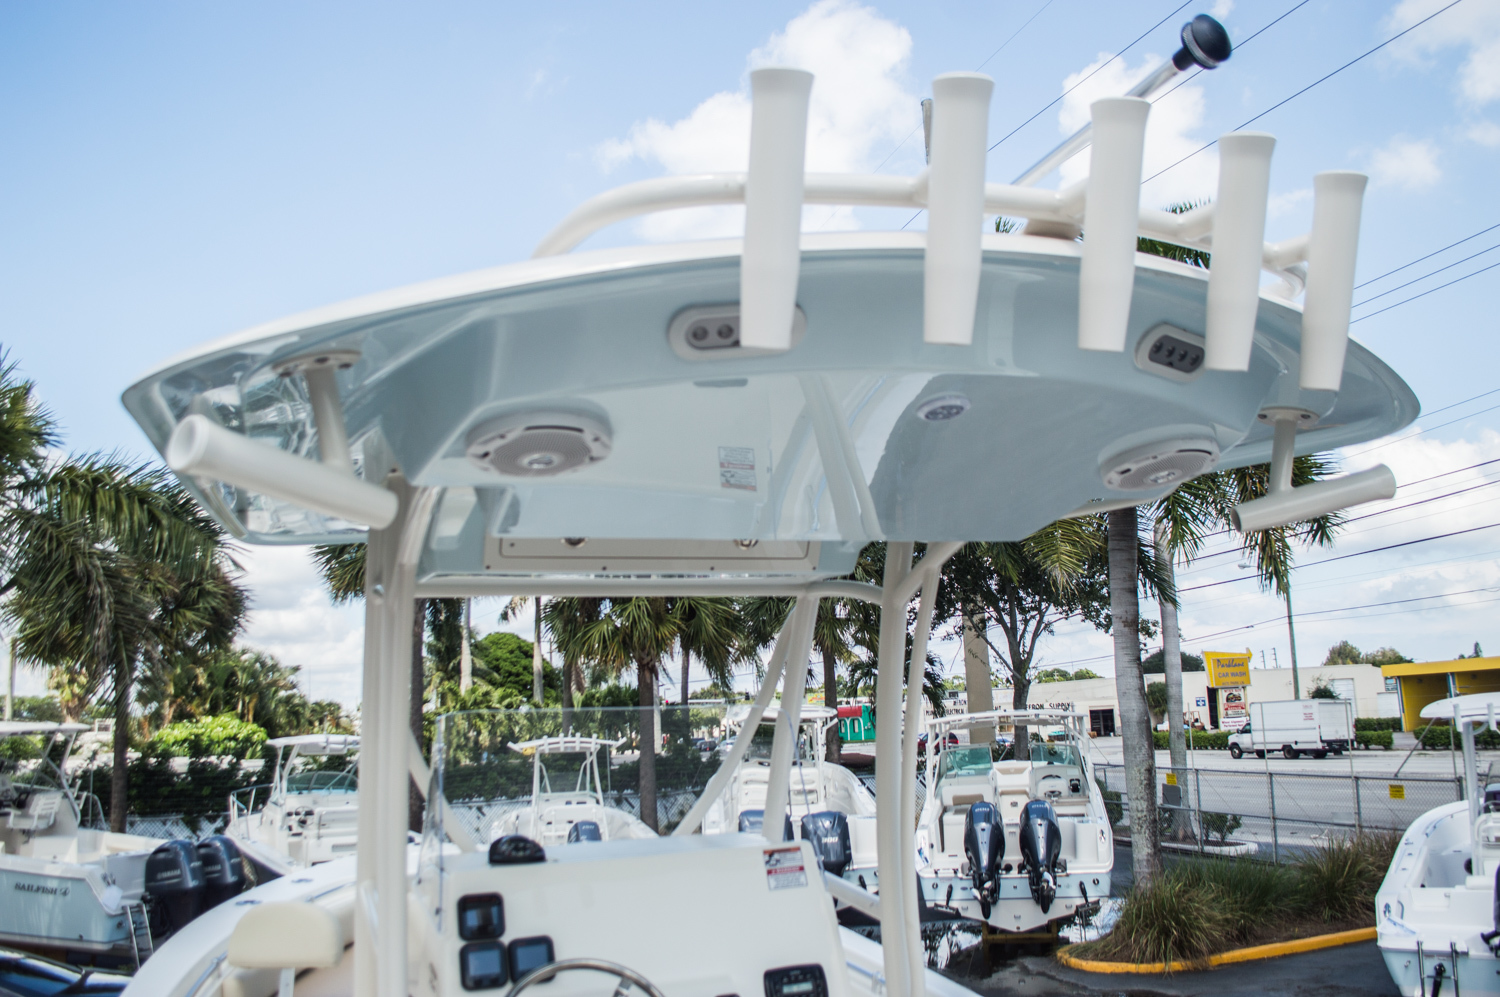 Thumbnail 10 for New 2015 Cobia 256 Center Console boat for sale in West Palm Beach, FL